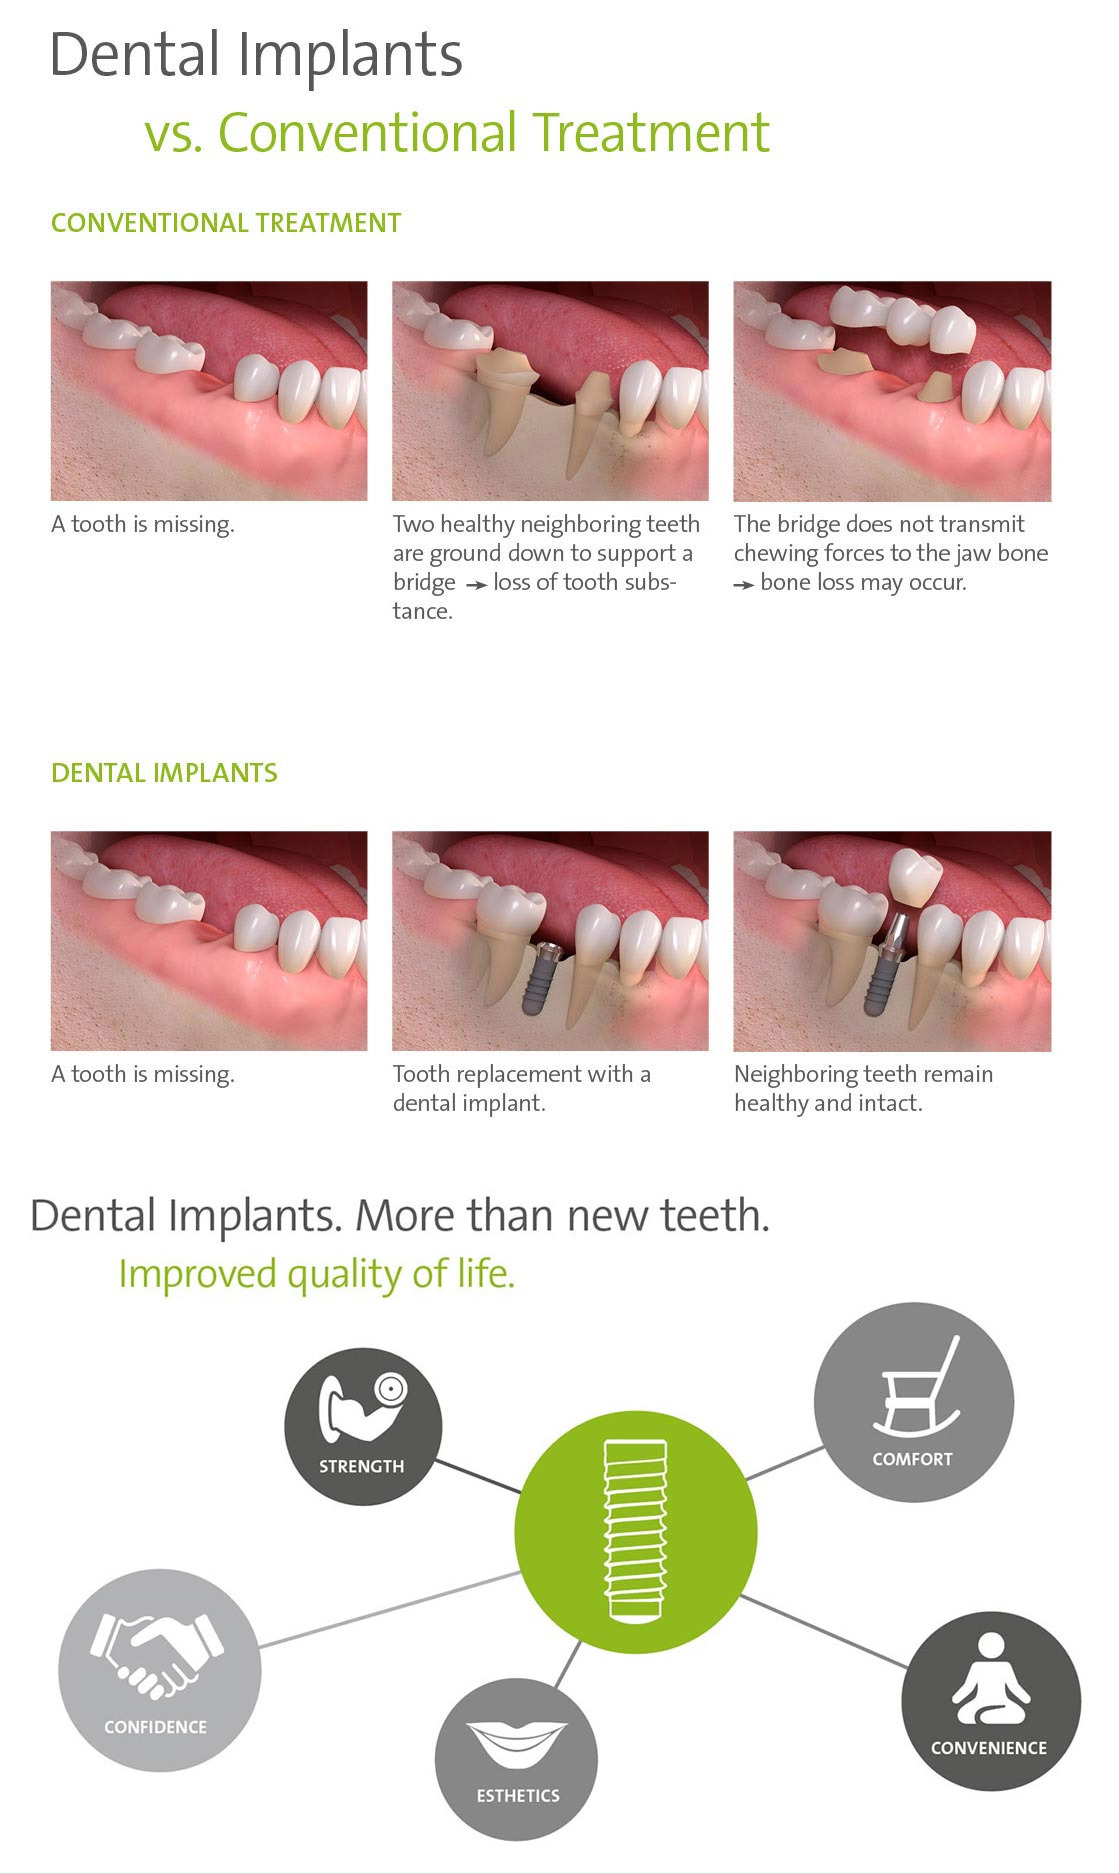 Bay-2-Dental-implants-V39s-conventional-implants-Bay-3-Dental-Implants-more-than-new-teeth-